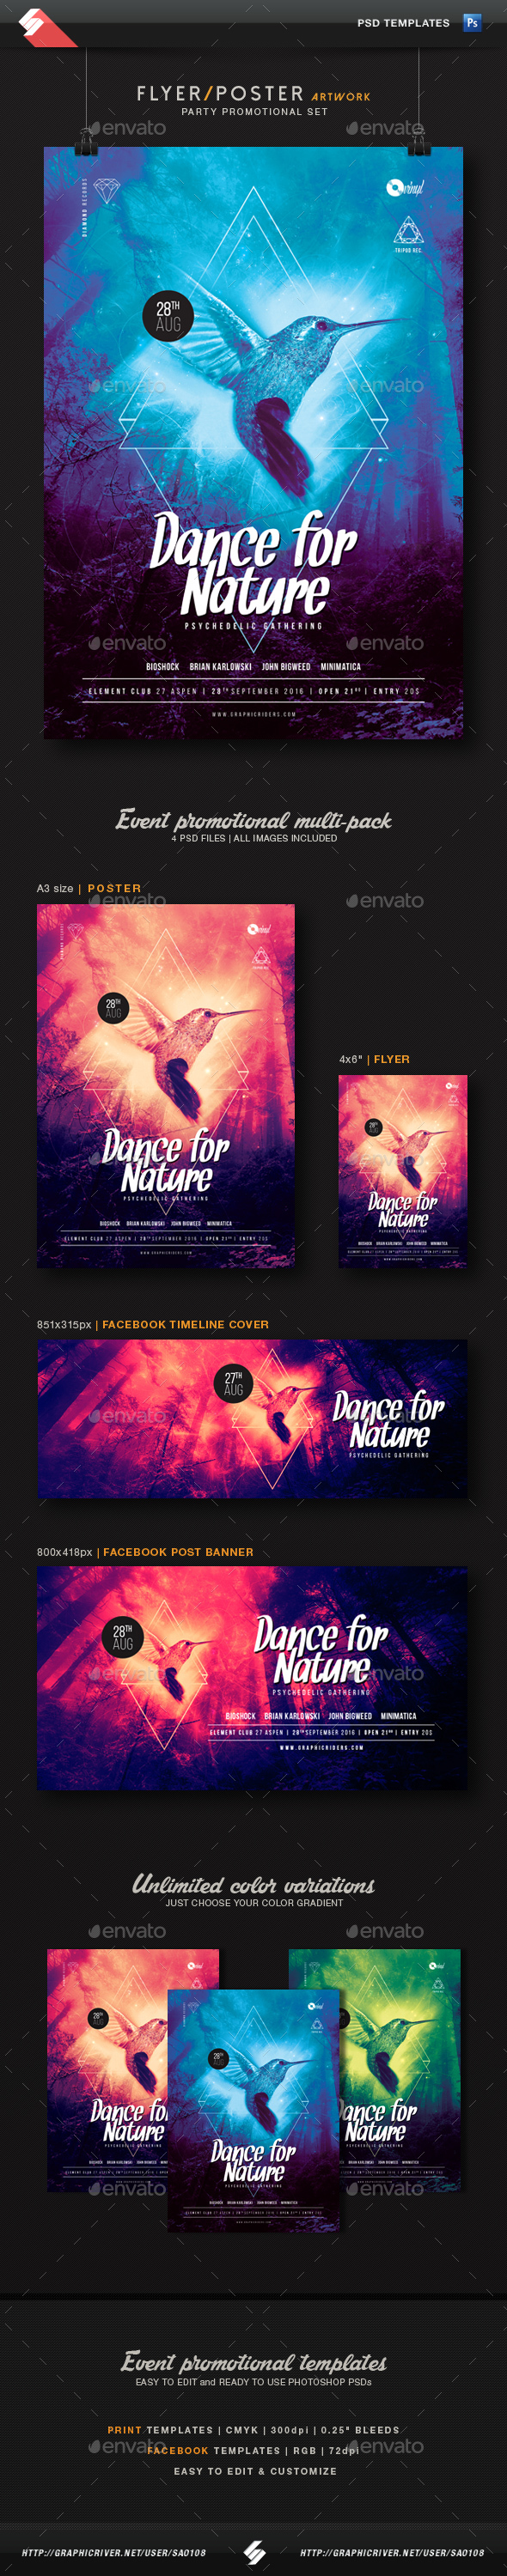 Dance For Nature - Party Promotional Templates Set - Clubs & Parties Events